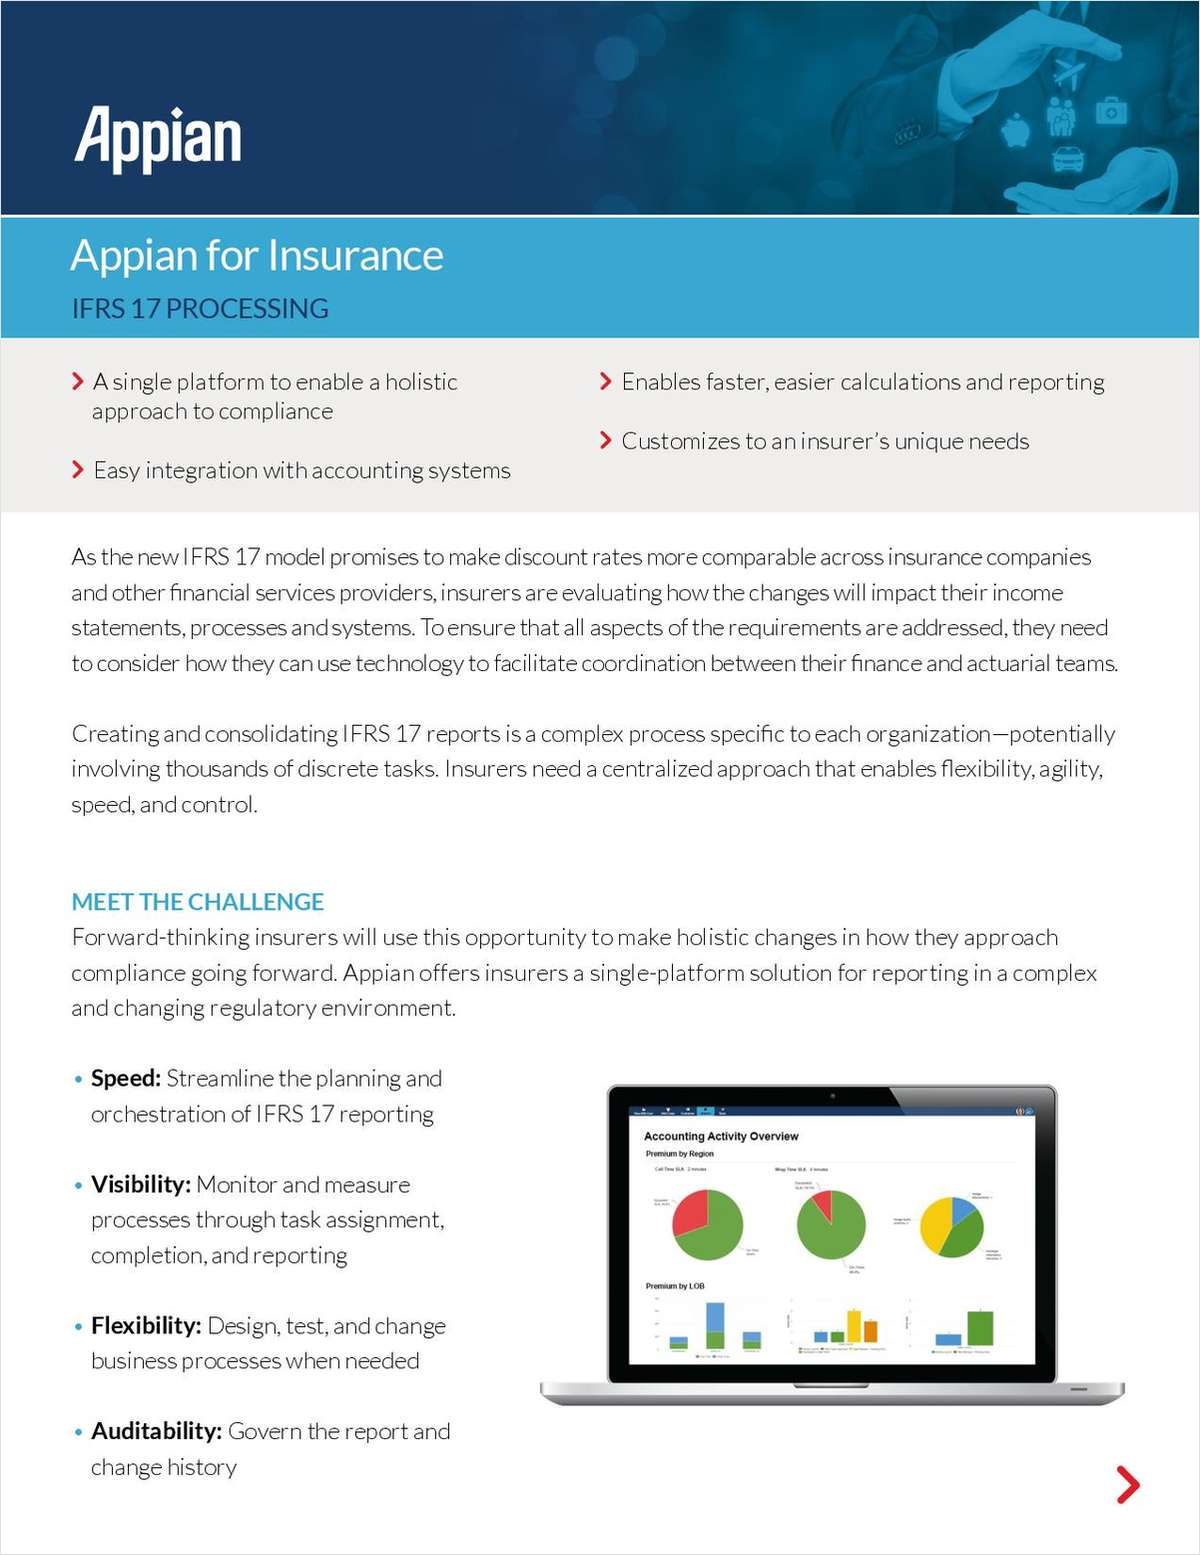 Appian for Insurance: IFRS 17 Processing